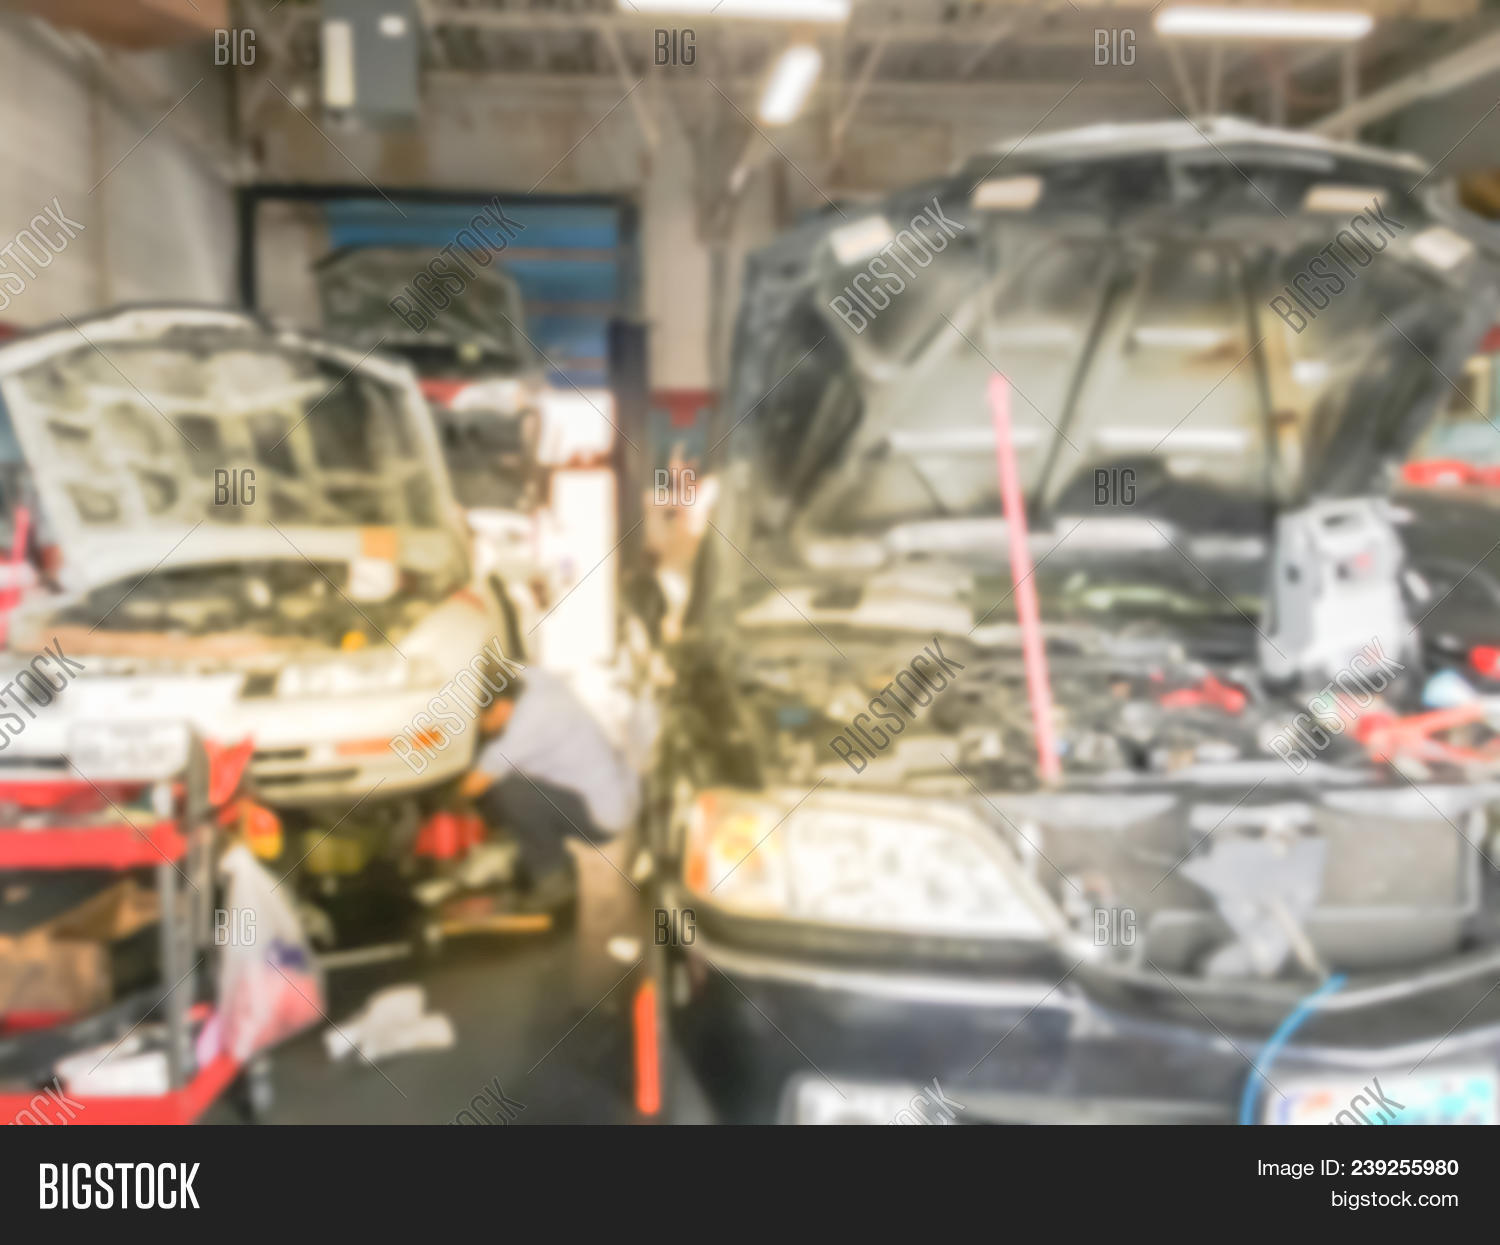 Abstract Auto Repair Image Photo Free Trial Bigstock